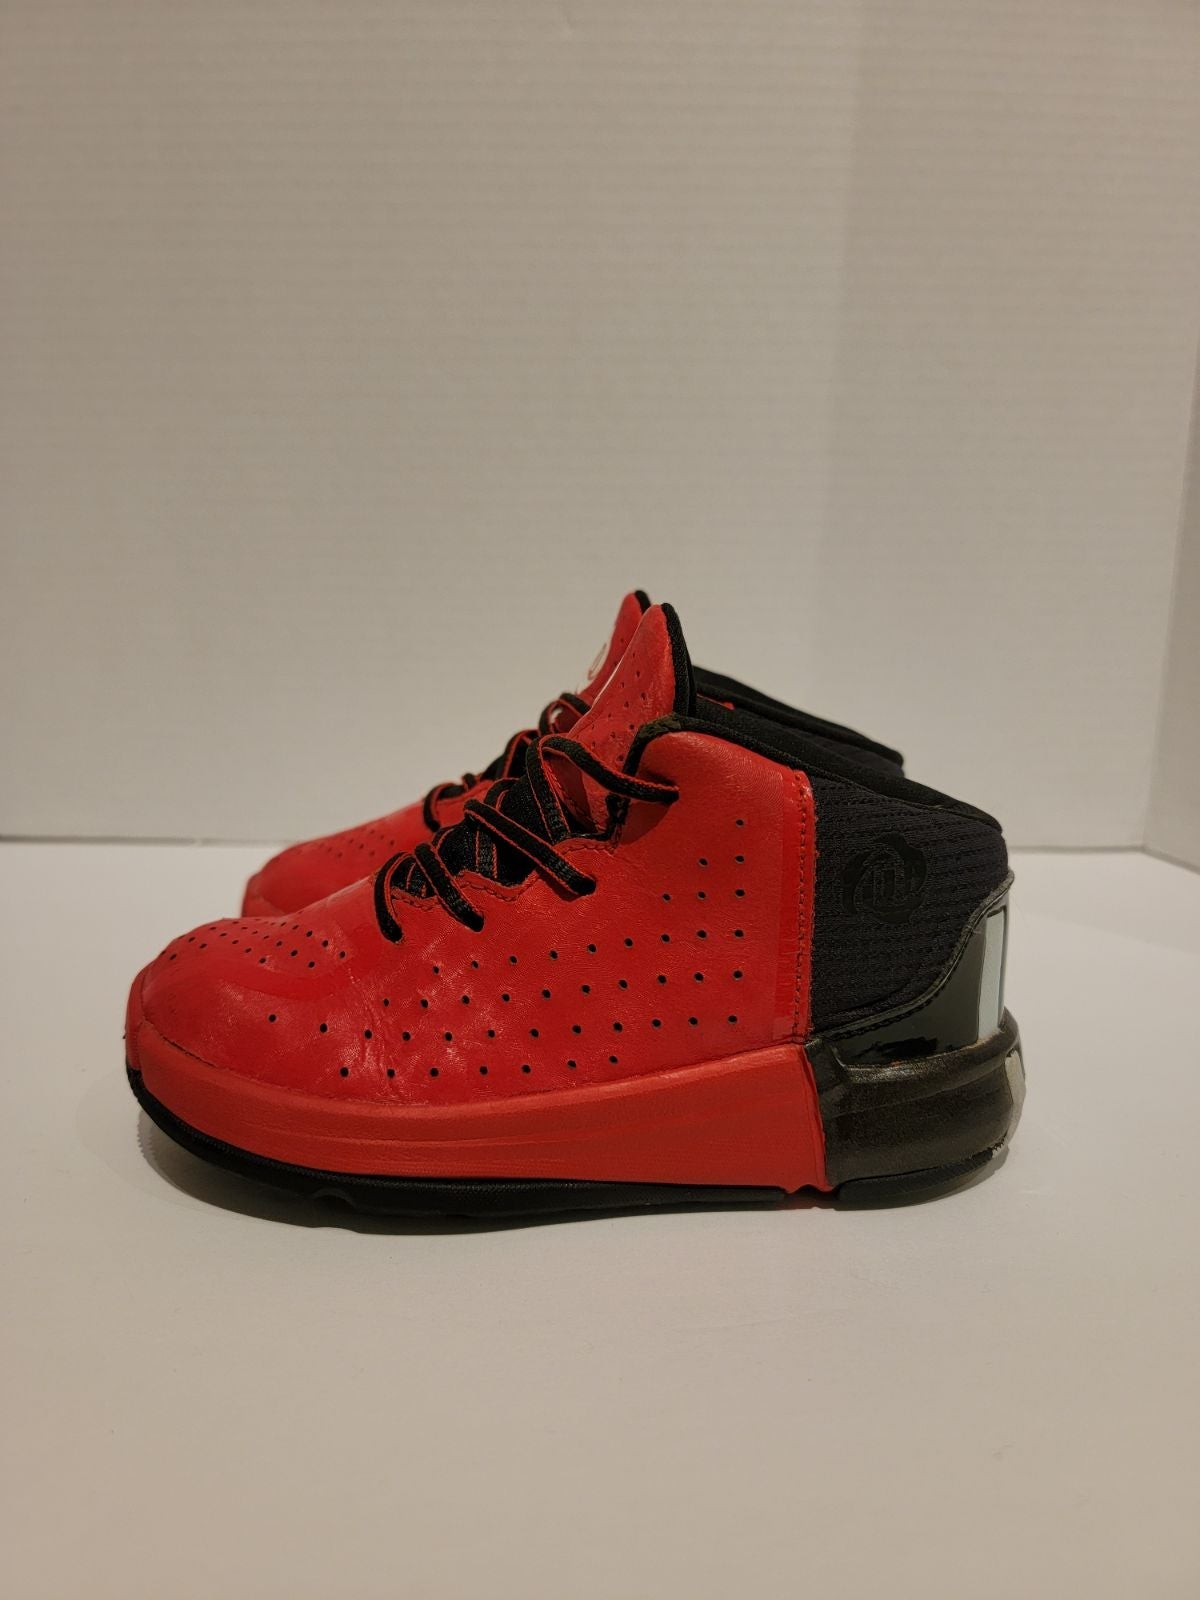 Adidas Derrick Rose Red and Black shoes.